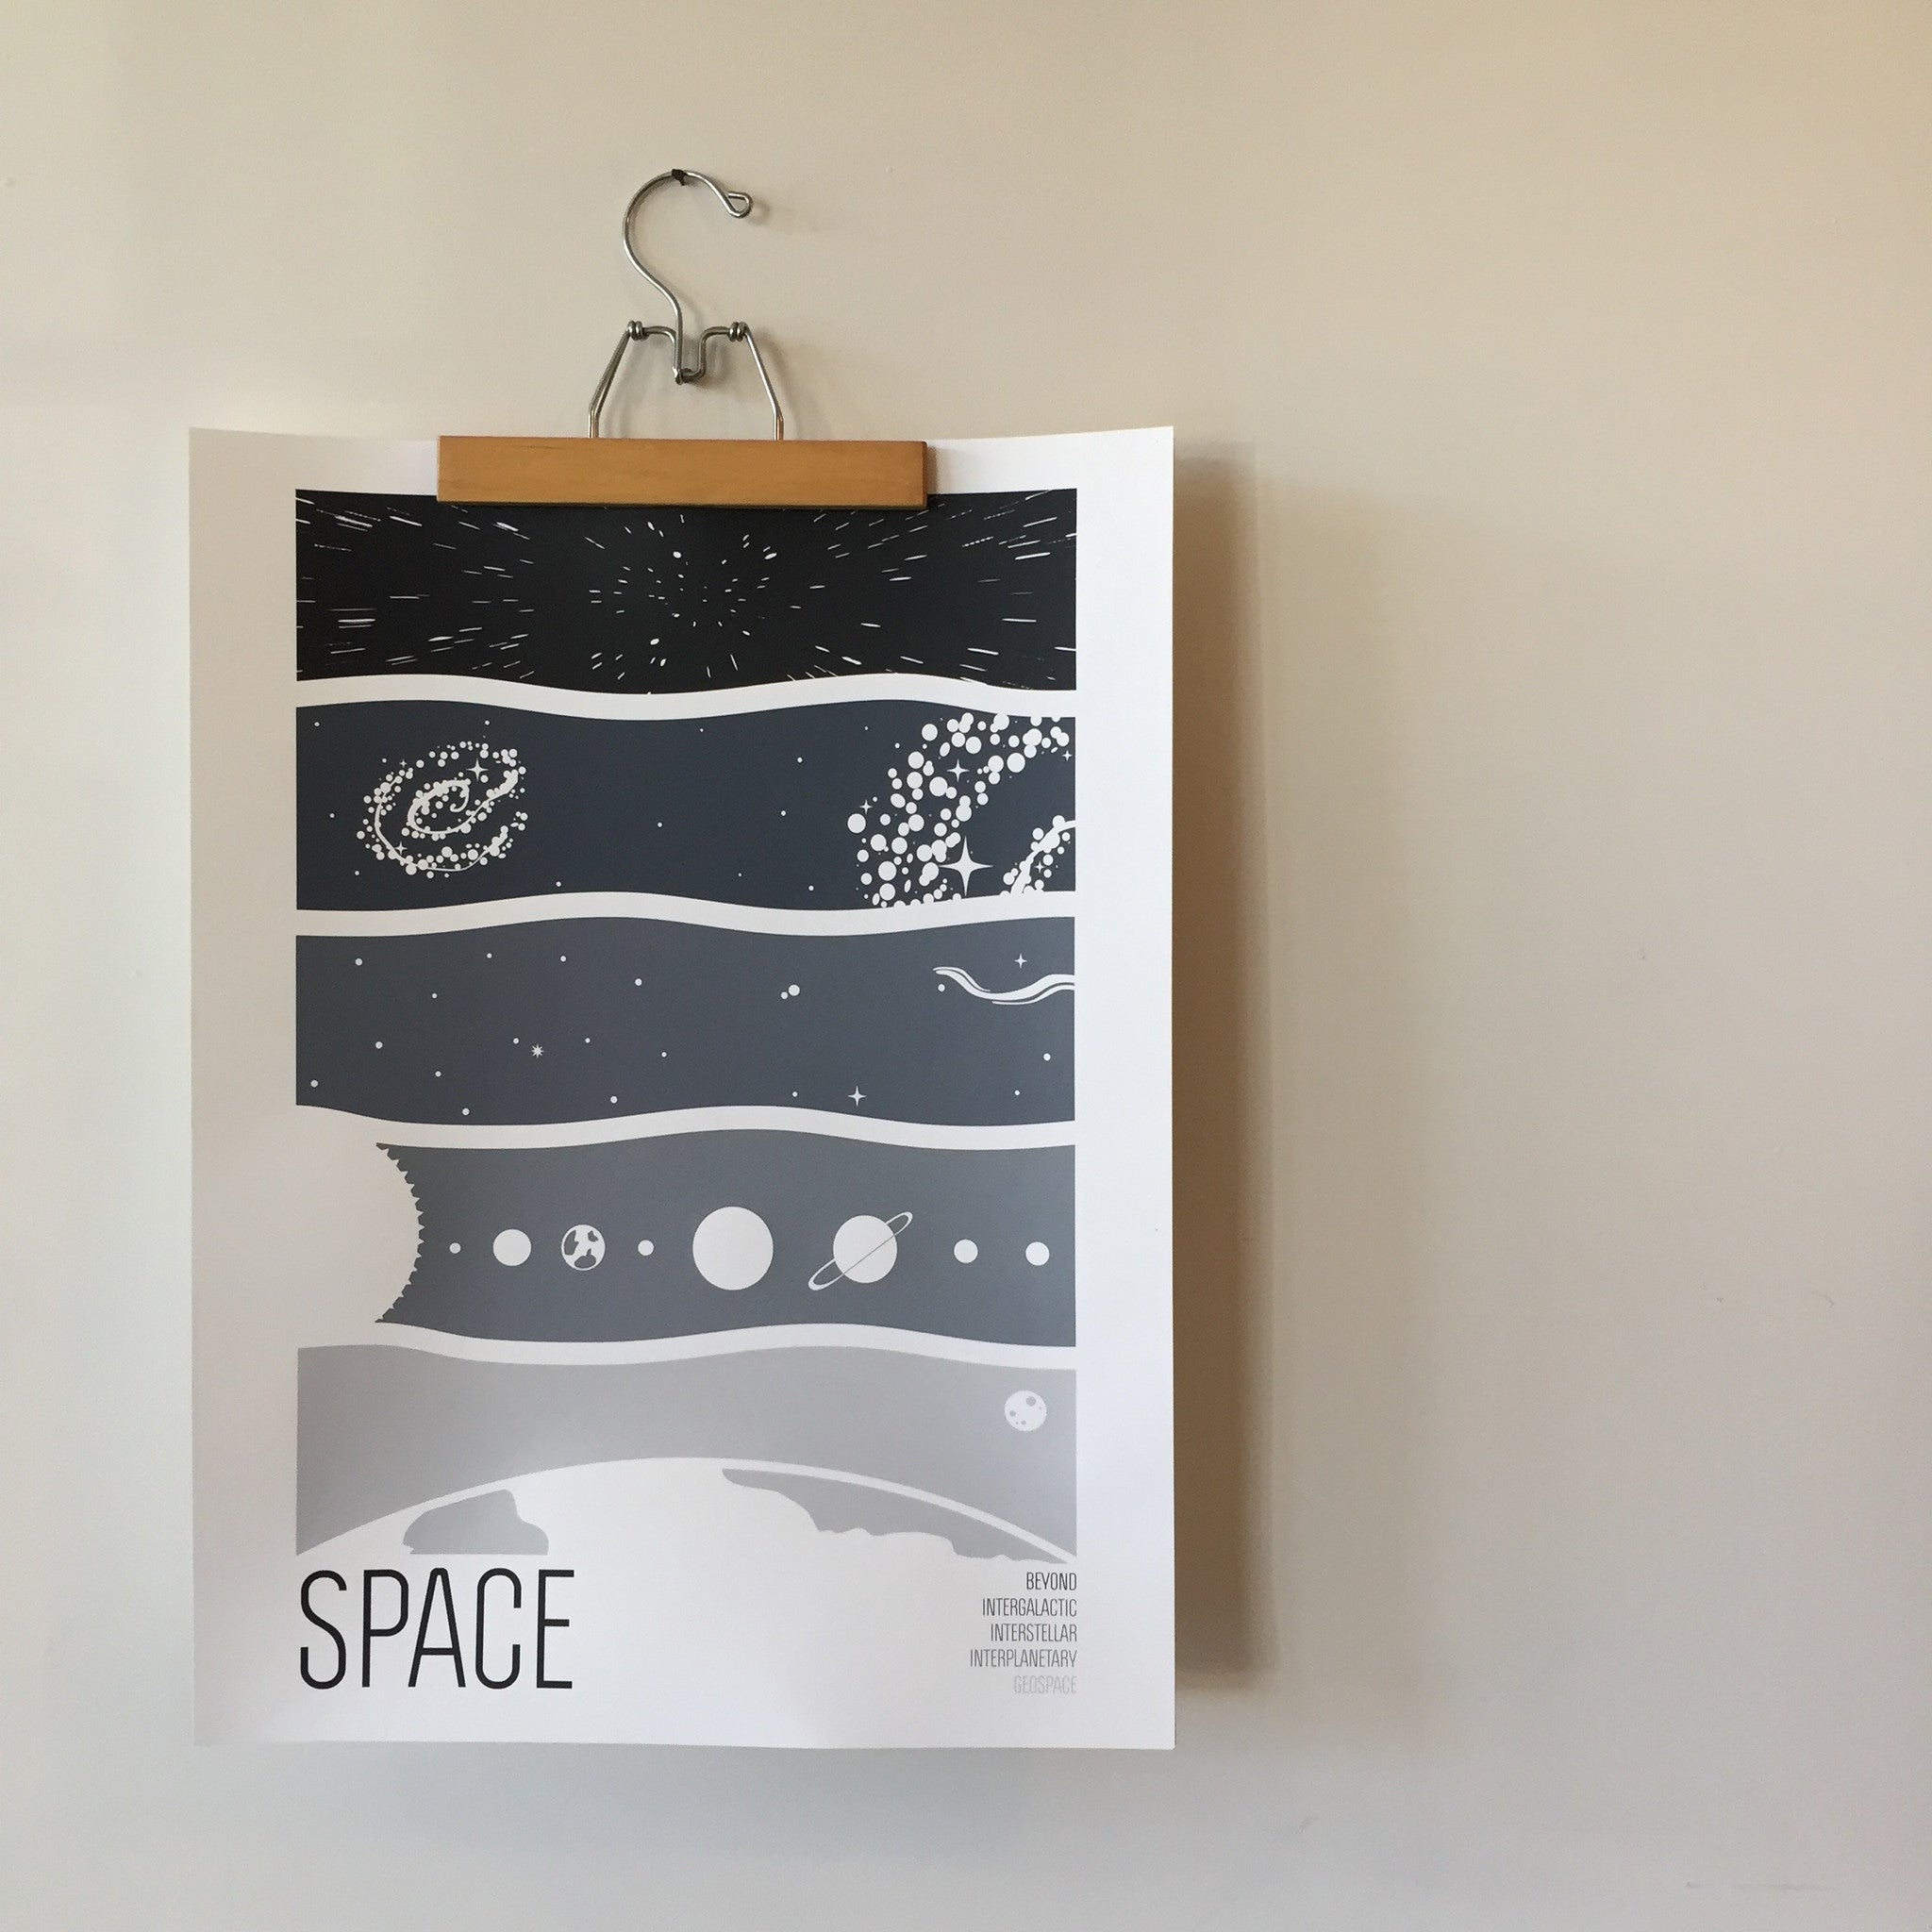 SPACE Screenprint by Brainstorm - Upstate MN